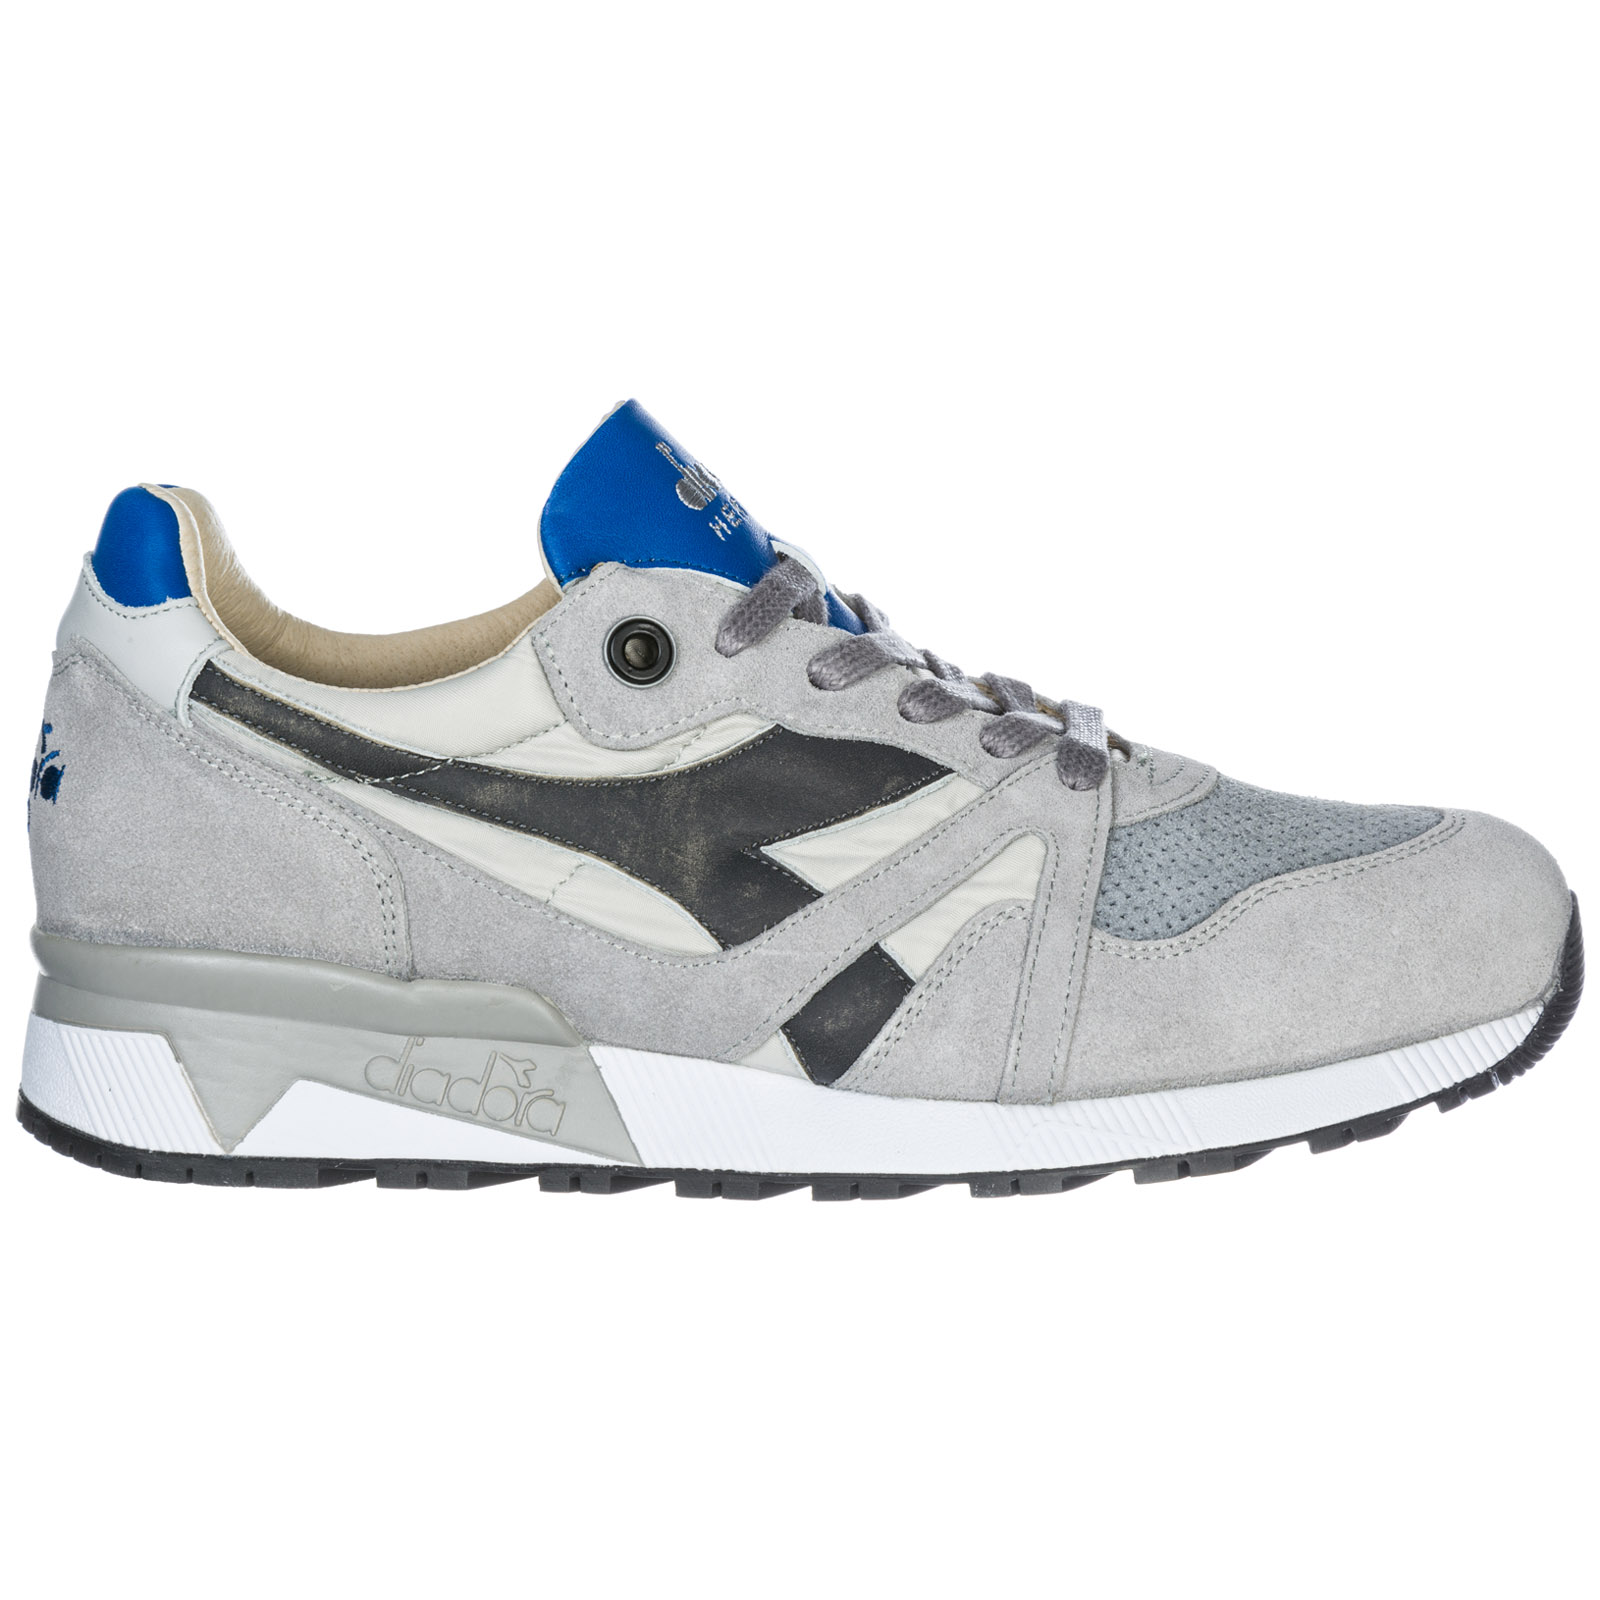 DIADORA Sneakers Sneakers N9000 H S Sw In Leather, Nylon And Suede With Rubber Sole in Grey